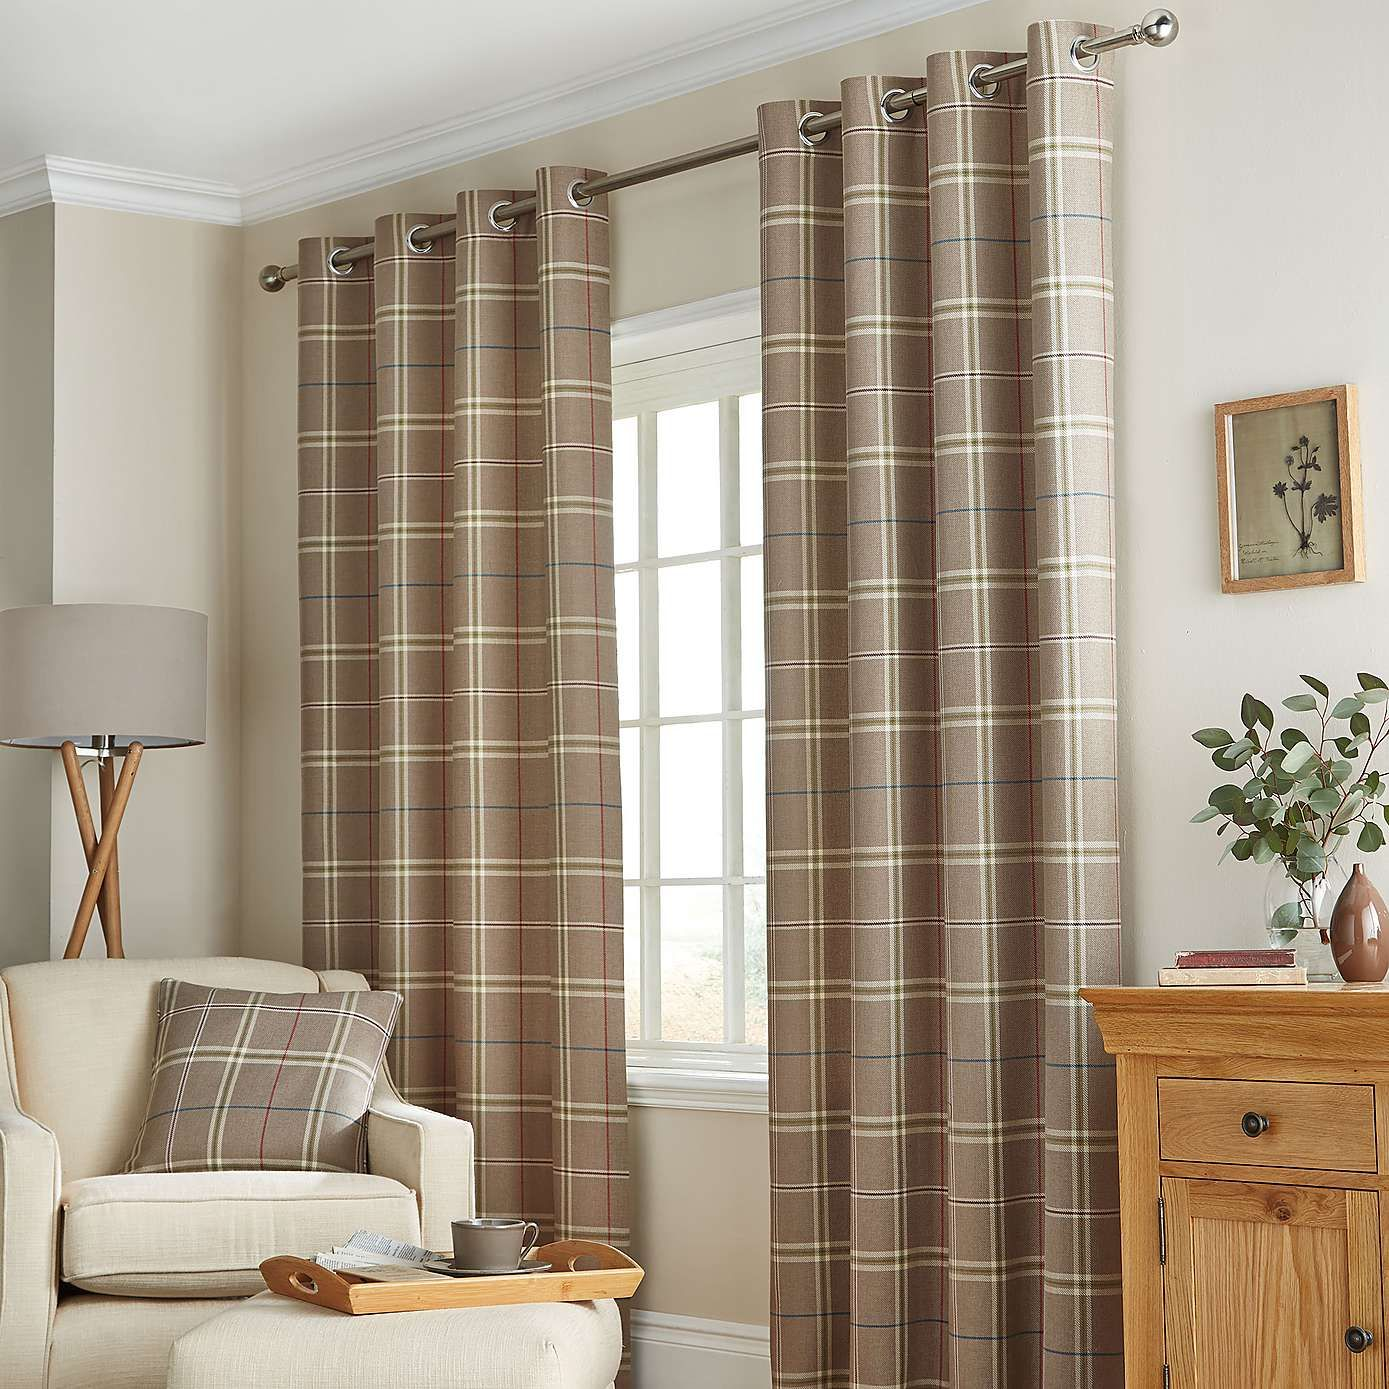 Dunelm Home: Lomond Lined Eyelet Curtains